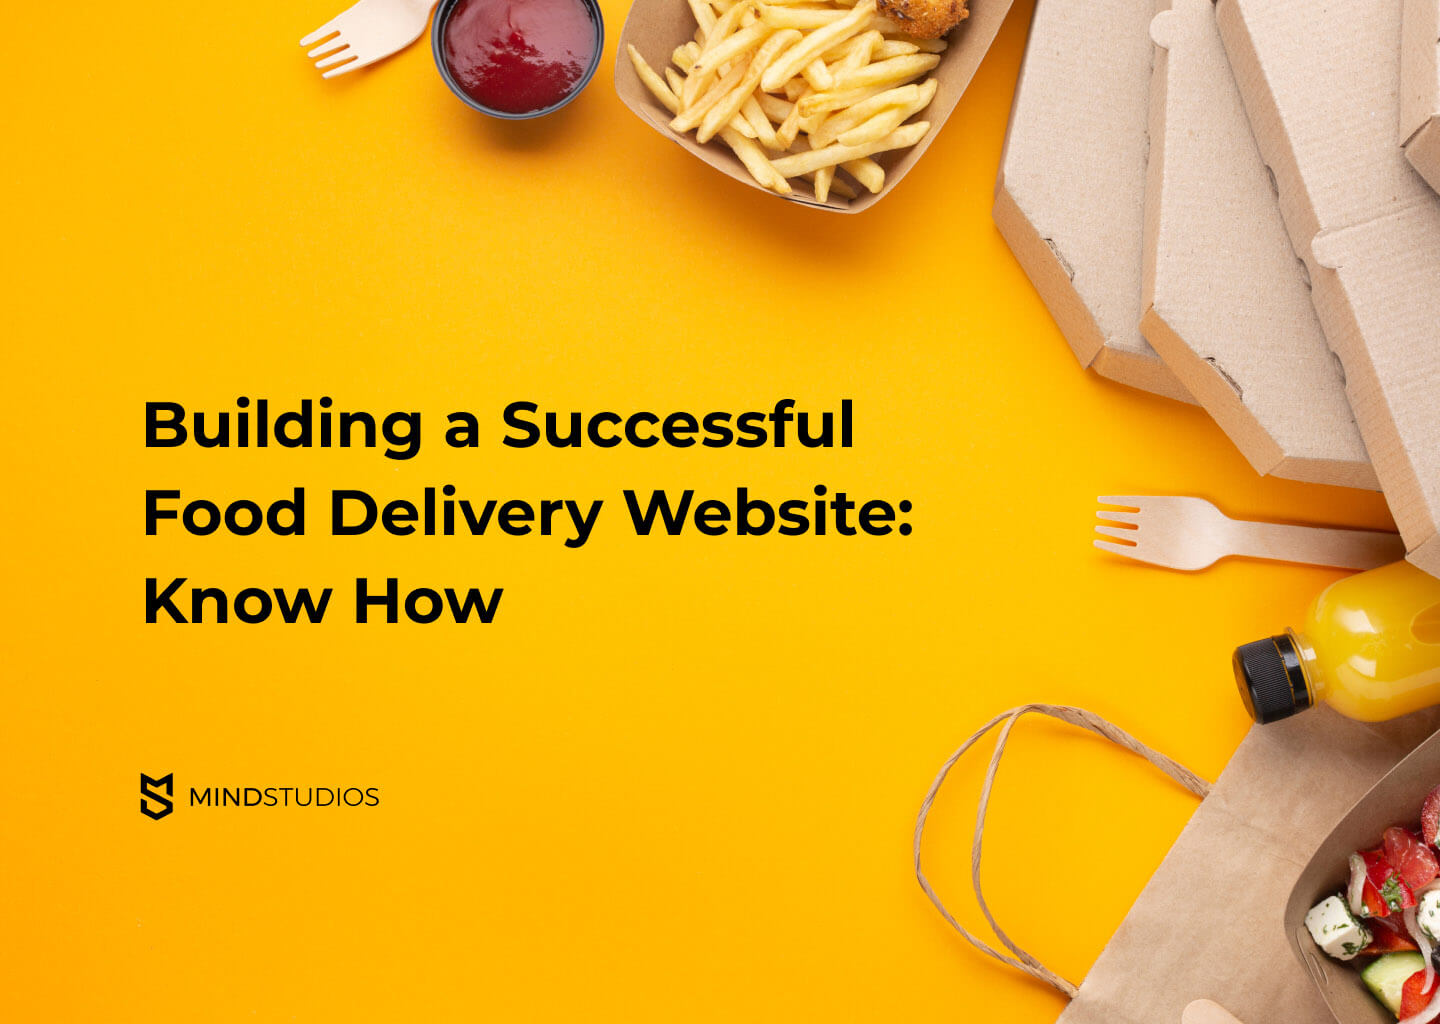 Building a Successful Food Delivery Website: Know How